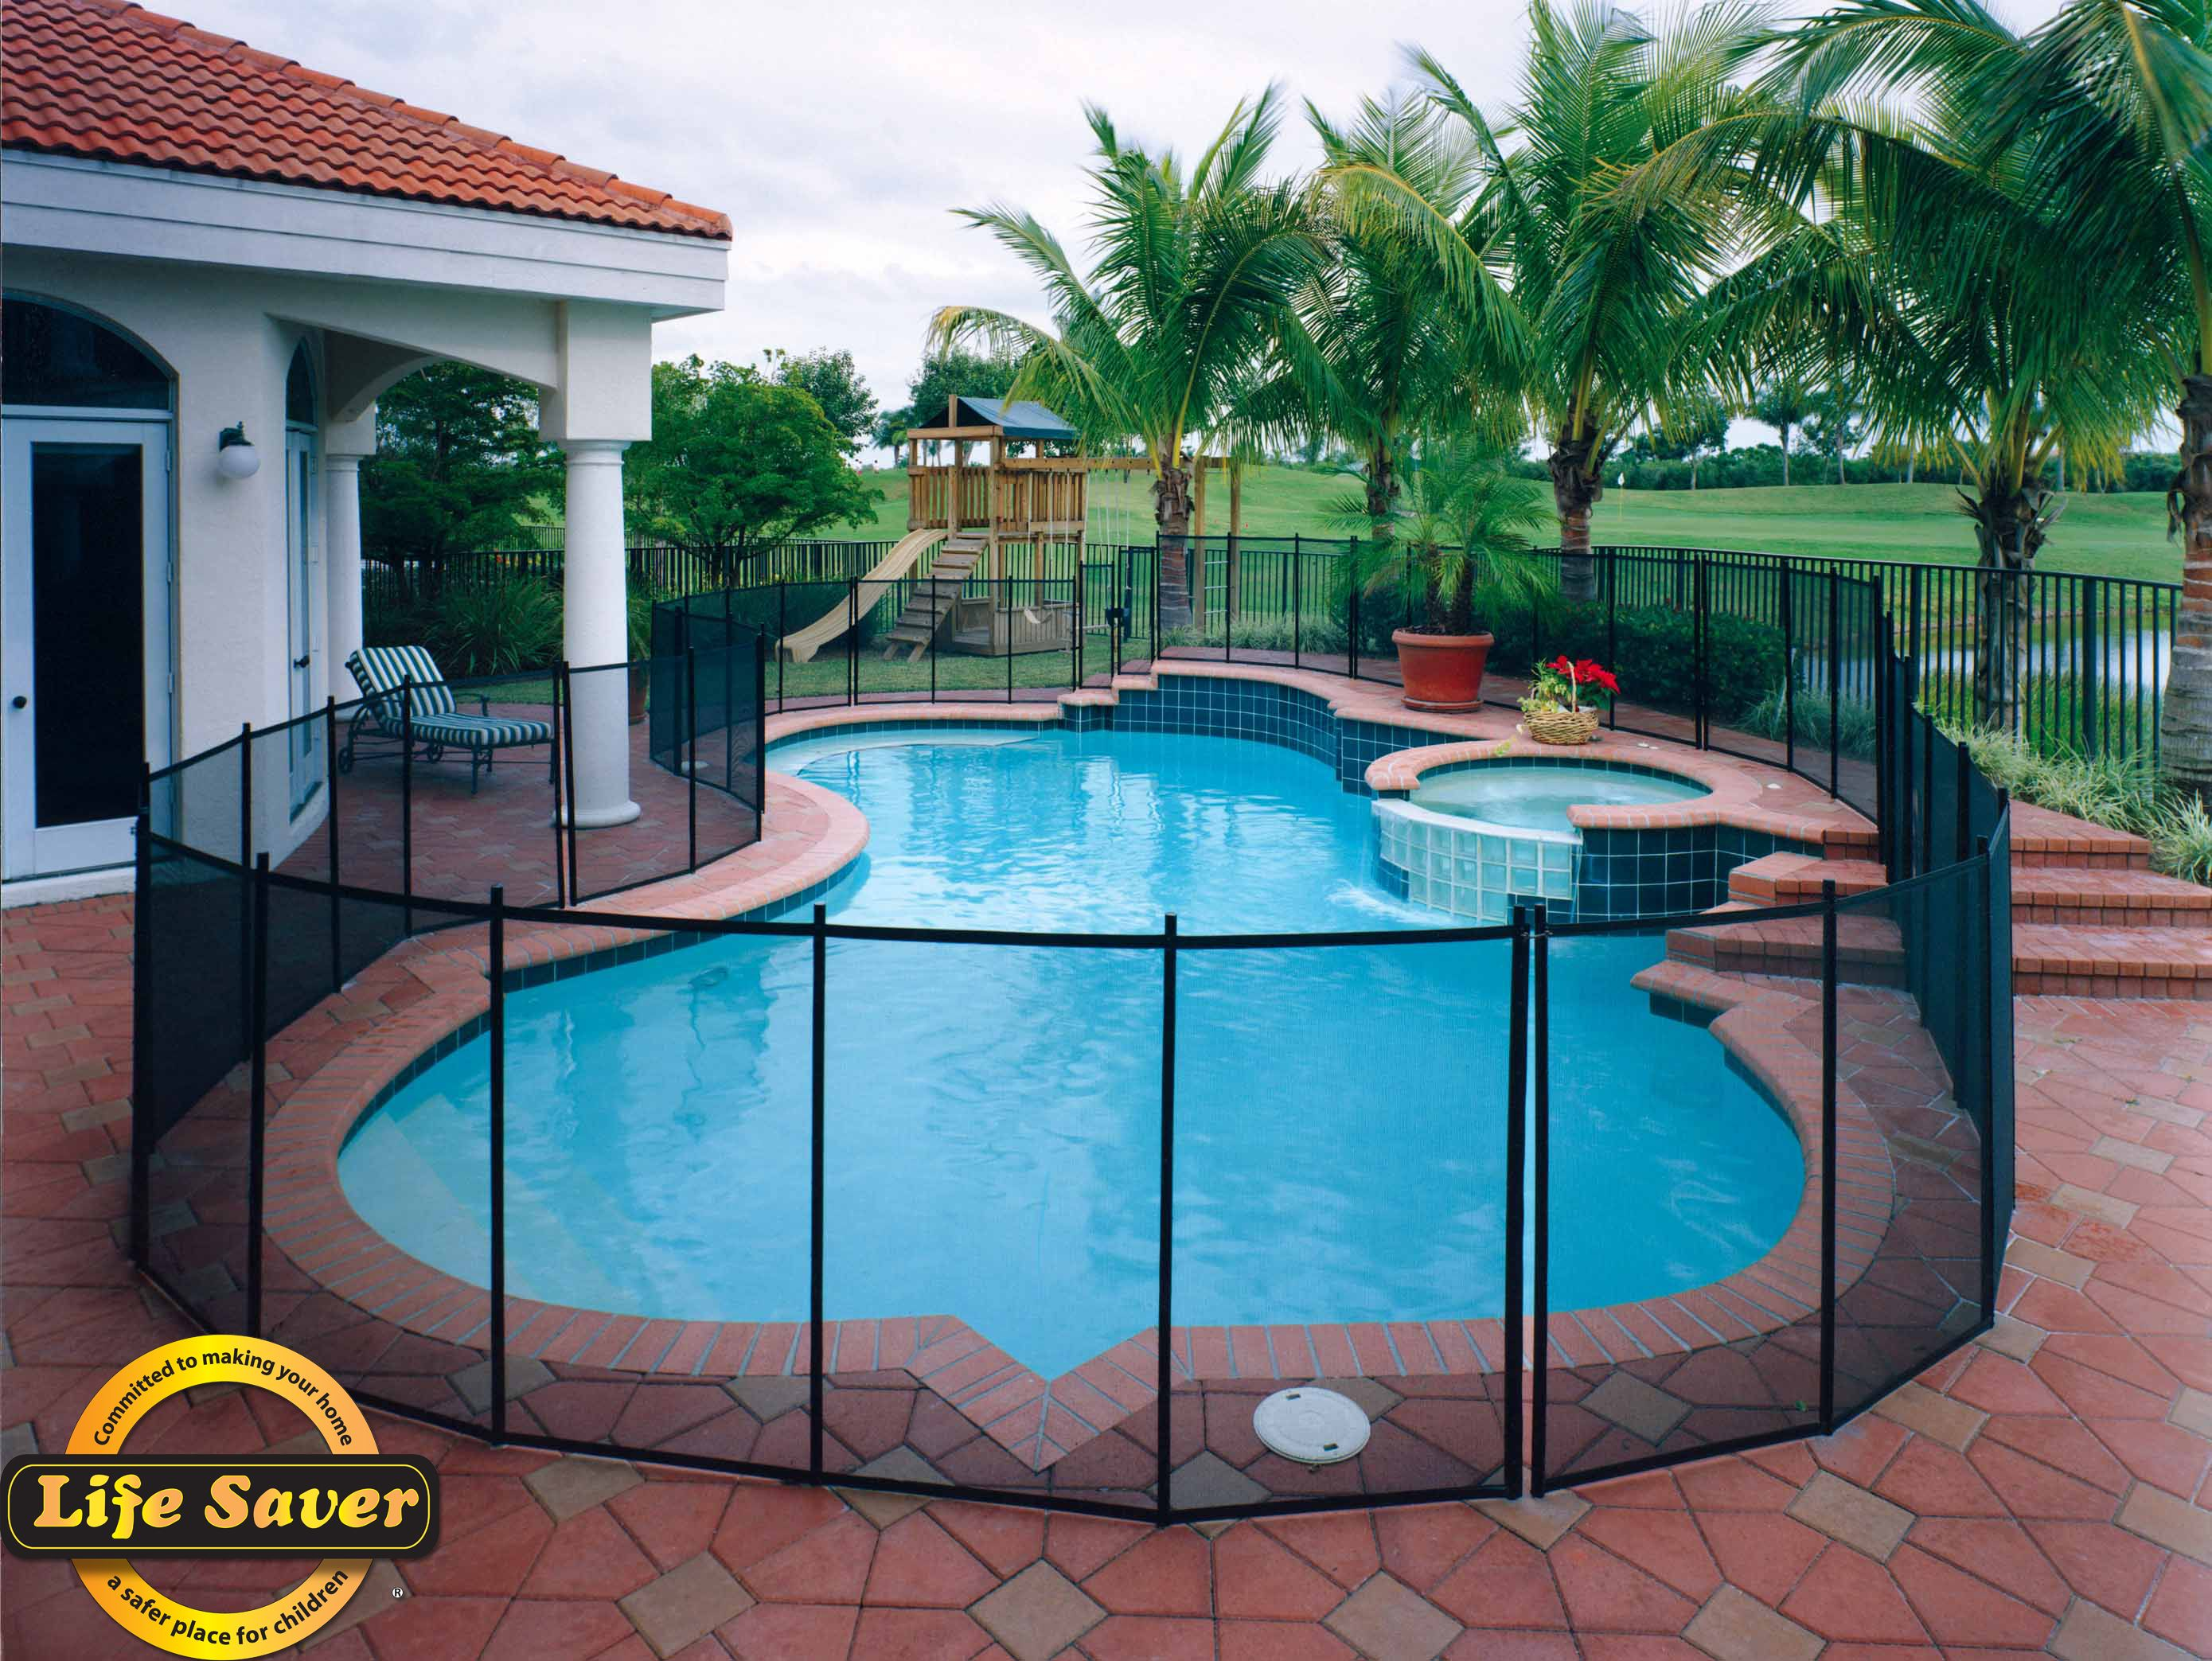 Removable Mesh Pool Safety Fence 4 Tall All Black Pool Fences